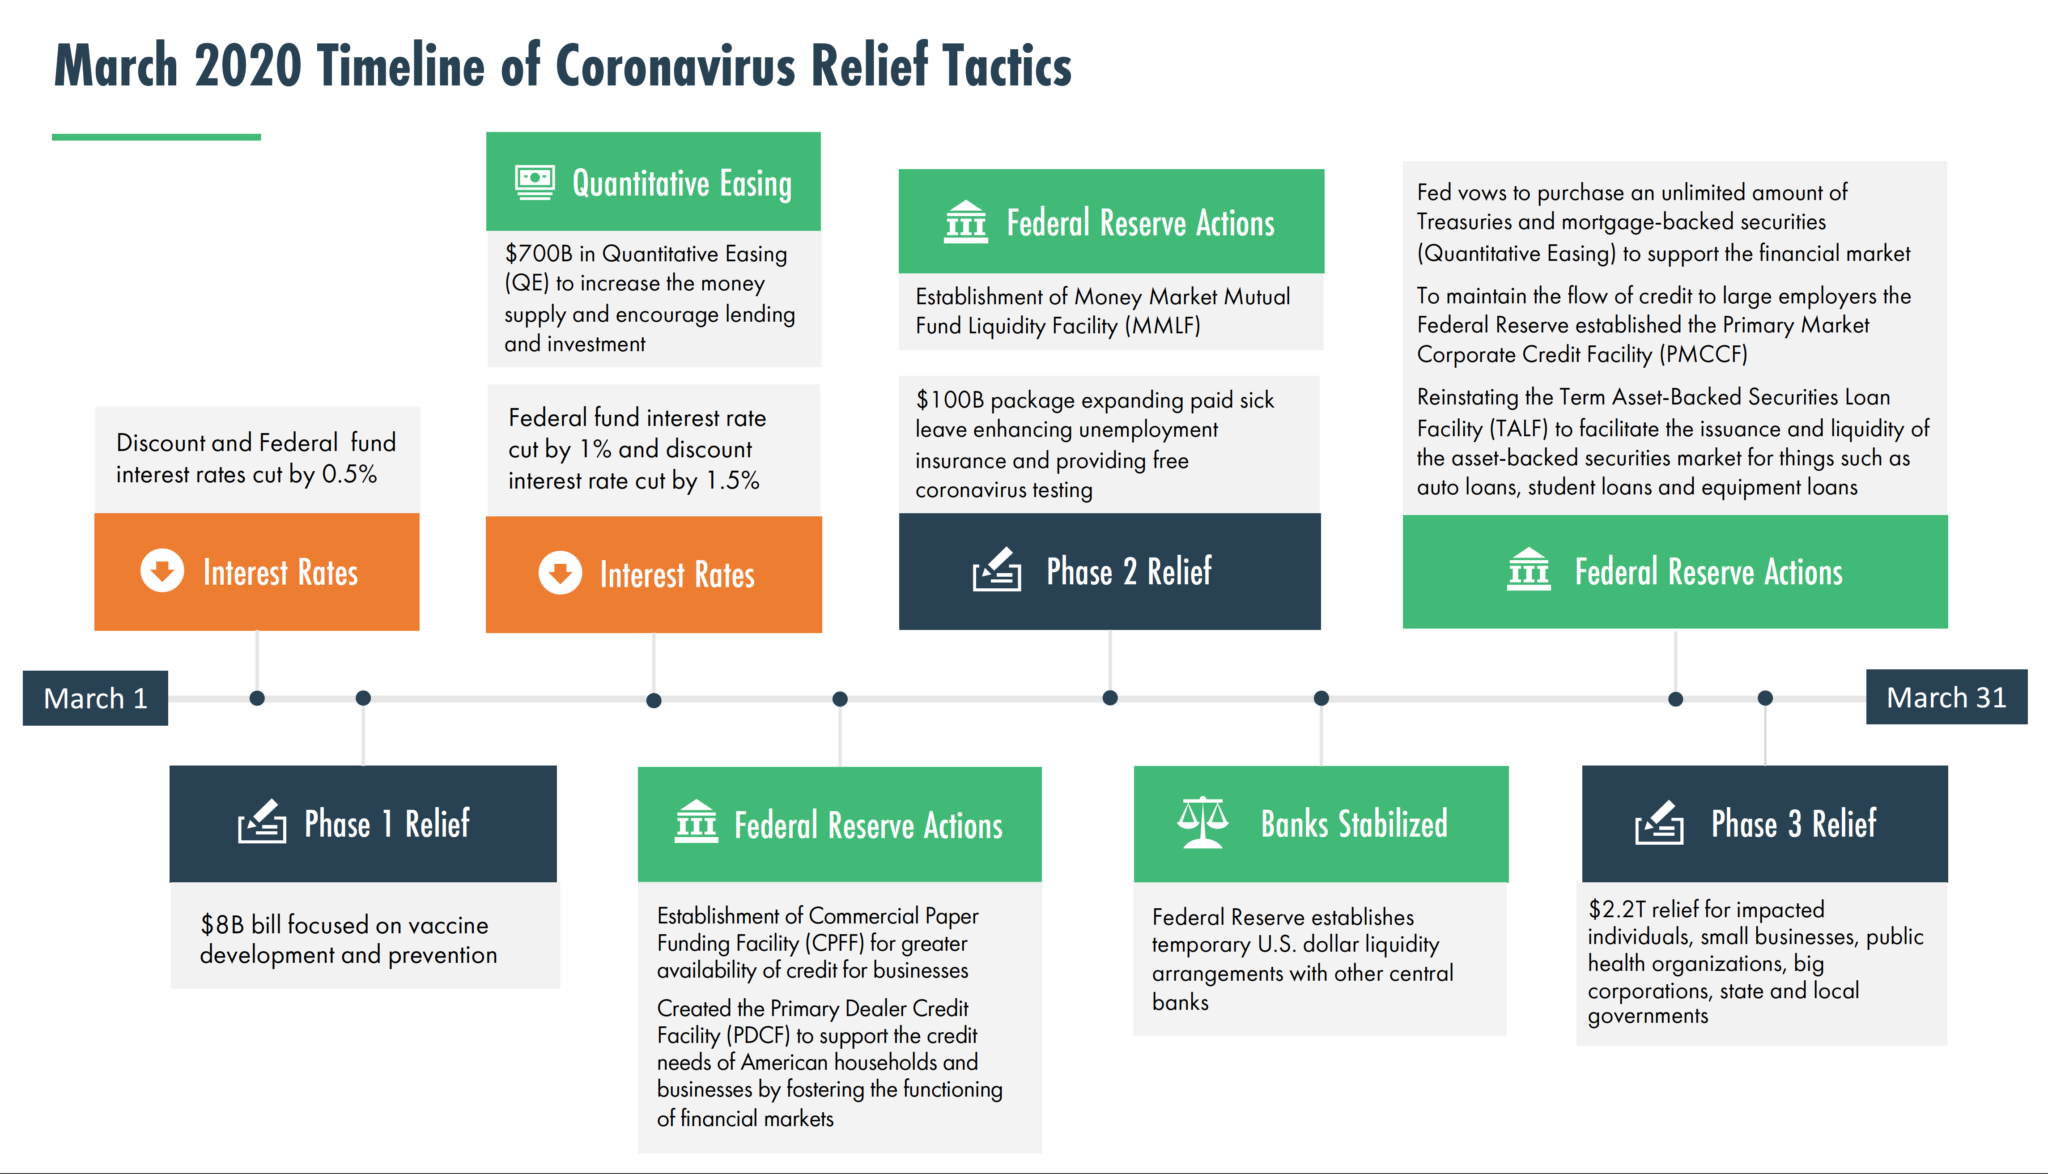 March 2020 timeline of government coronavirus COVID-19 relief tactics by Federal Reserve. Interest rate cuts. Phase 1. Phase 2. Phase 3.